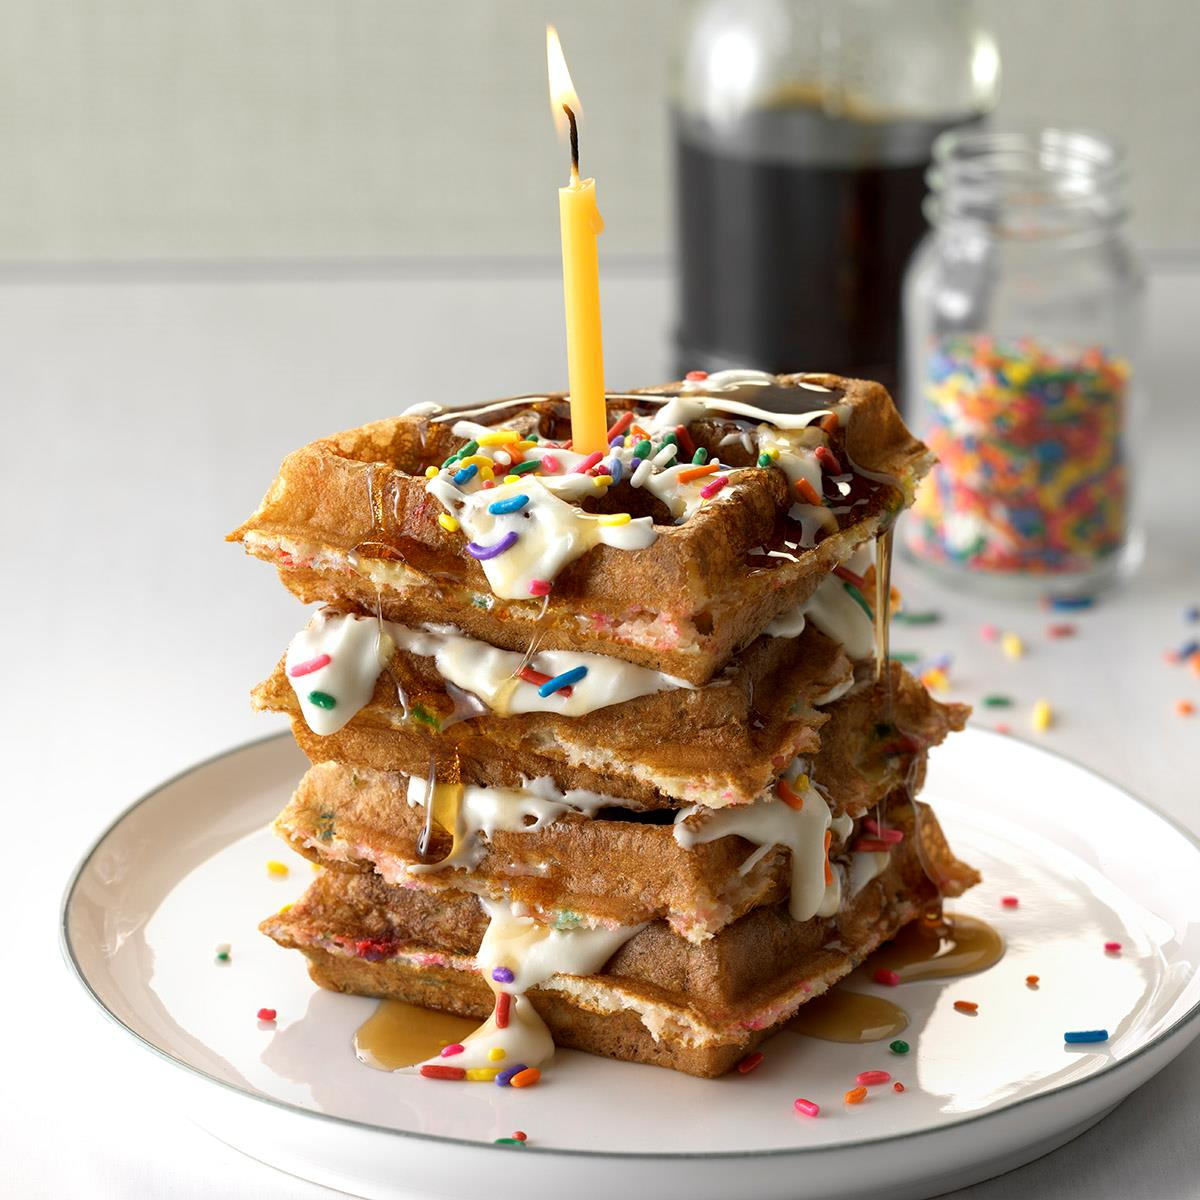 Strange Birthday Cake Waffles Recipe Taste Of Home Funny Birthday Cards Online Barepcheapnameinfo